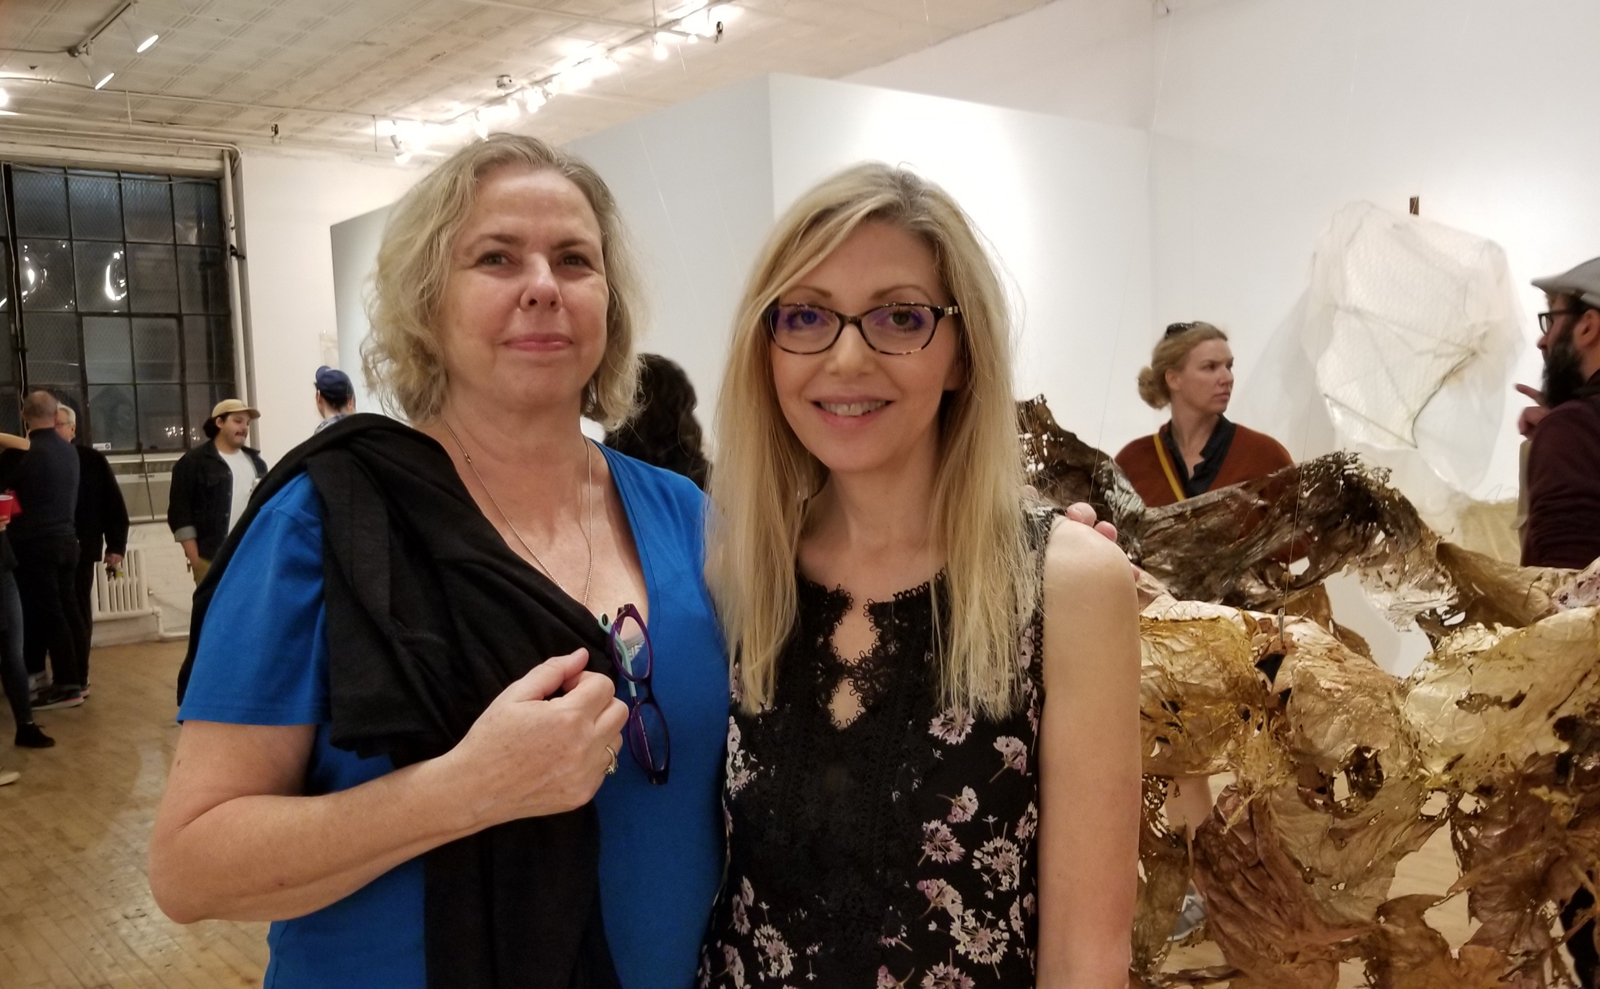 Bonny and Lizbeth at the opening.jpg